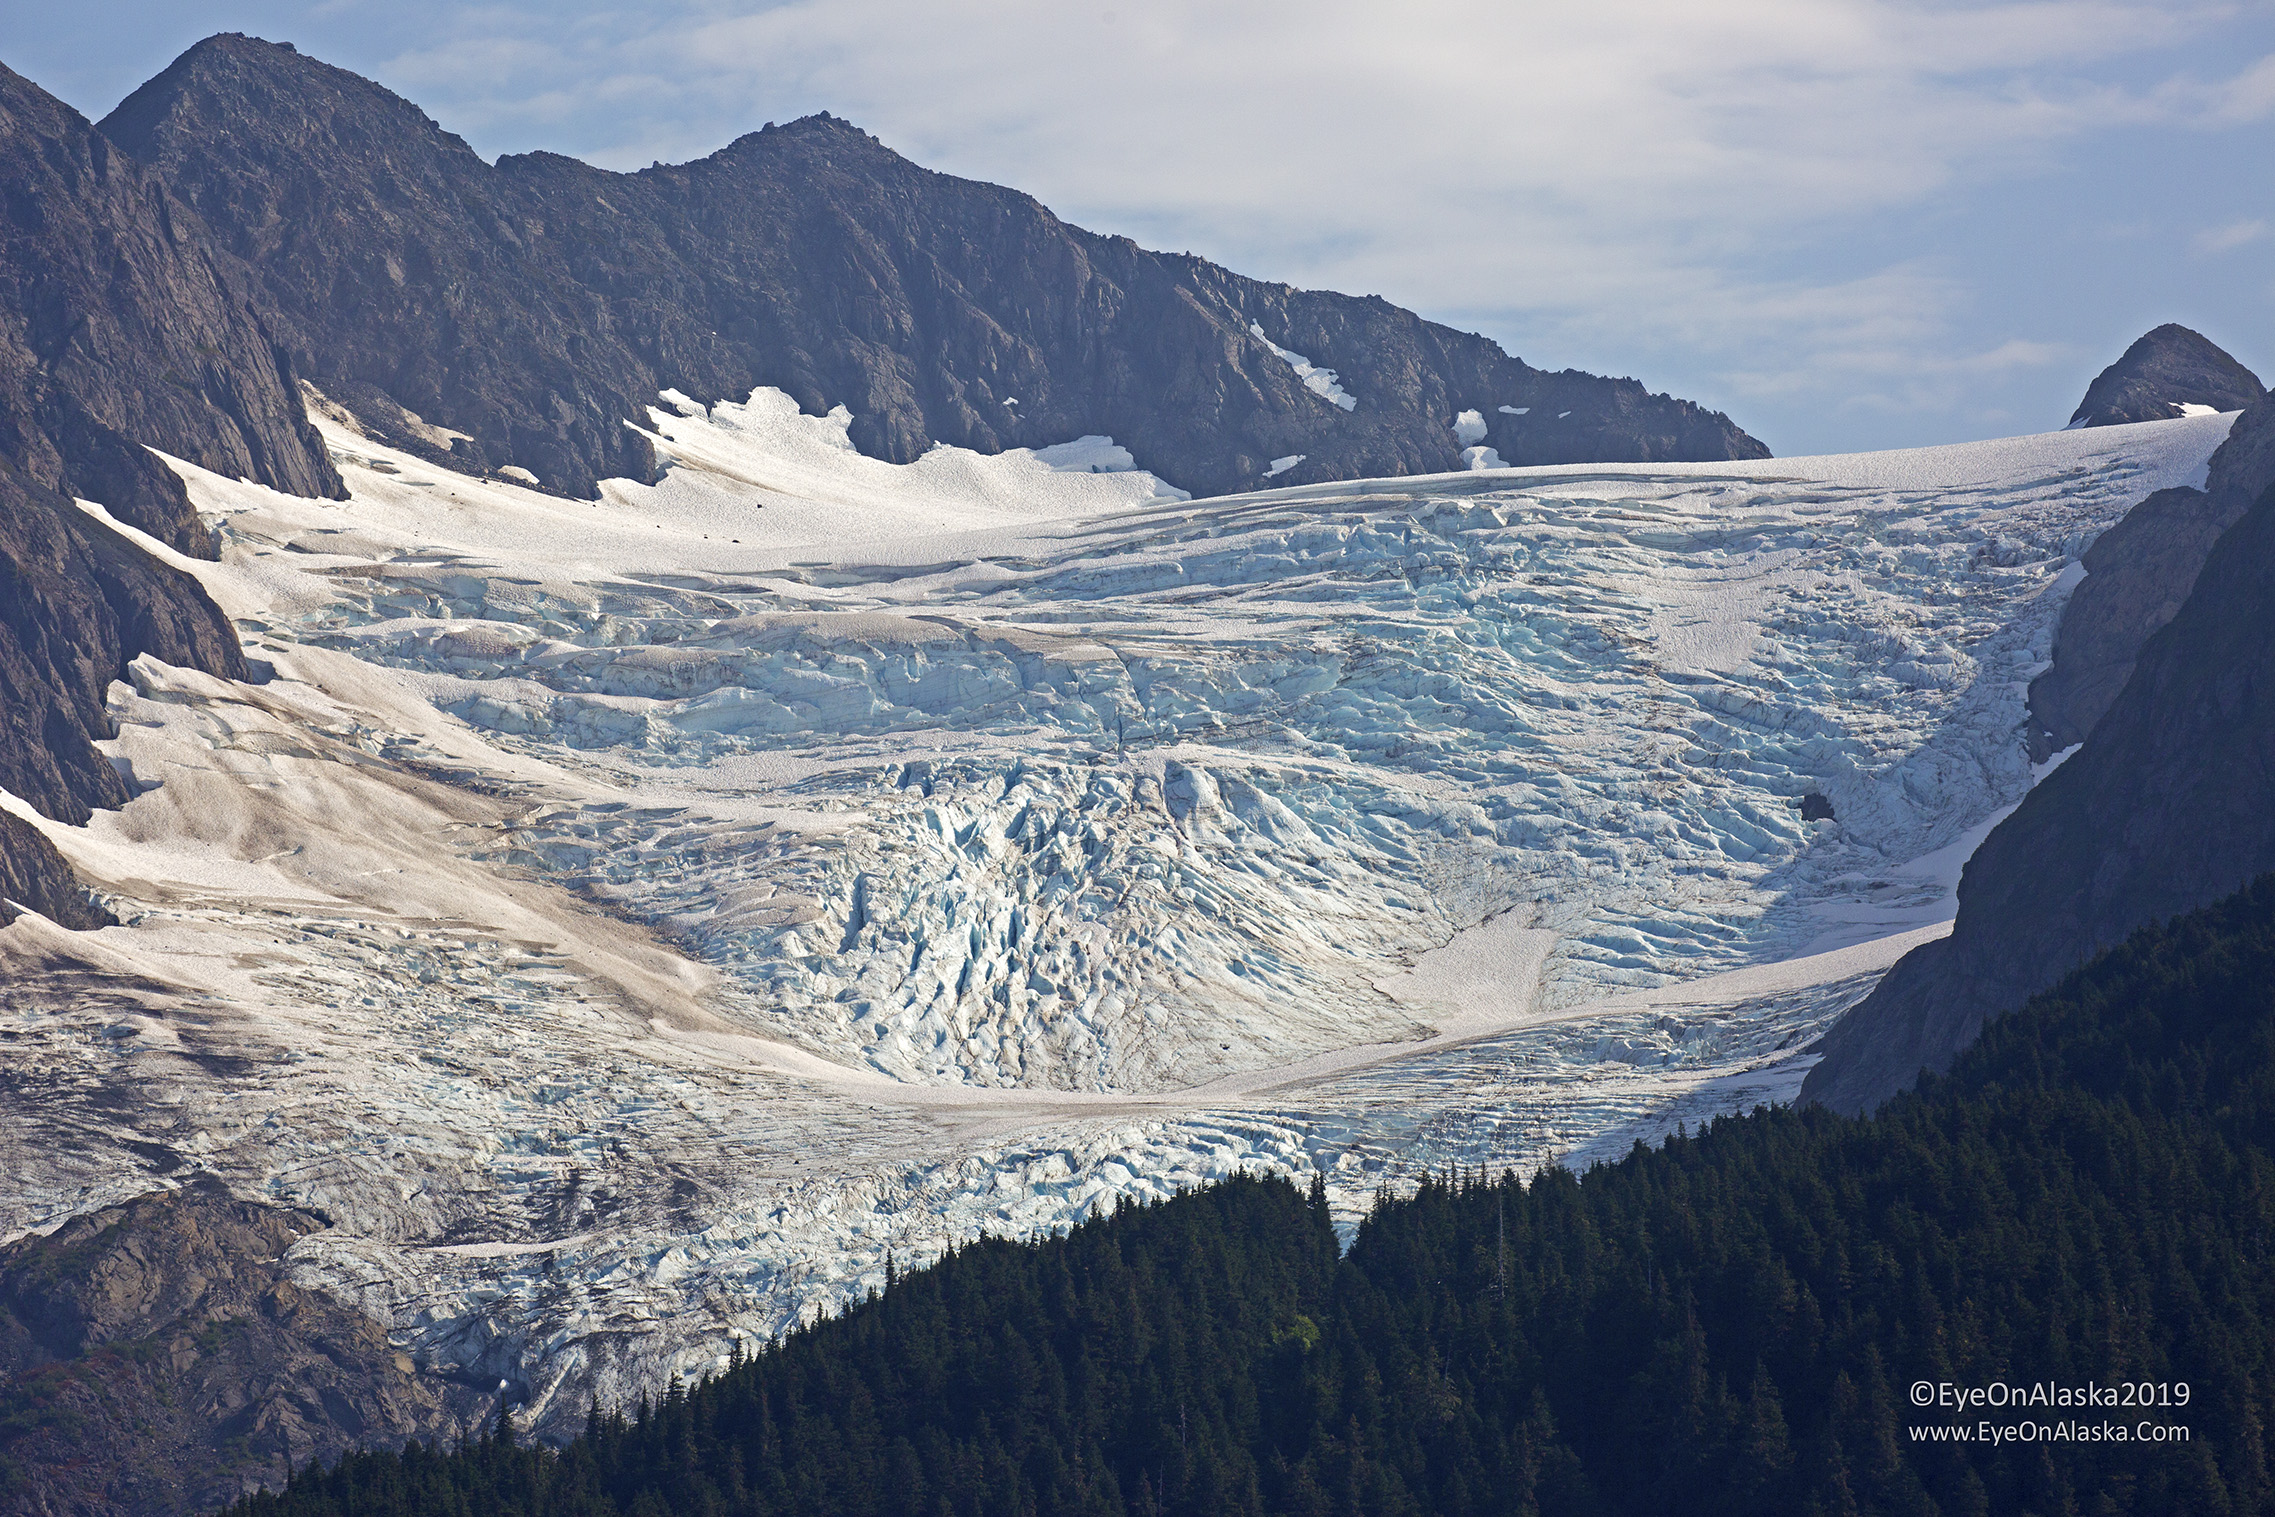 One of the many glaciers in Portage Valley.